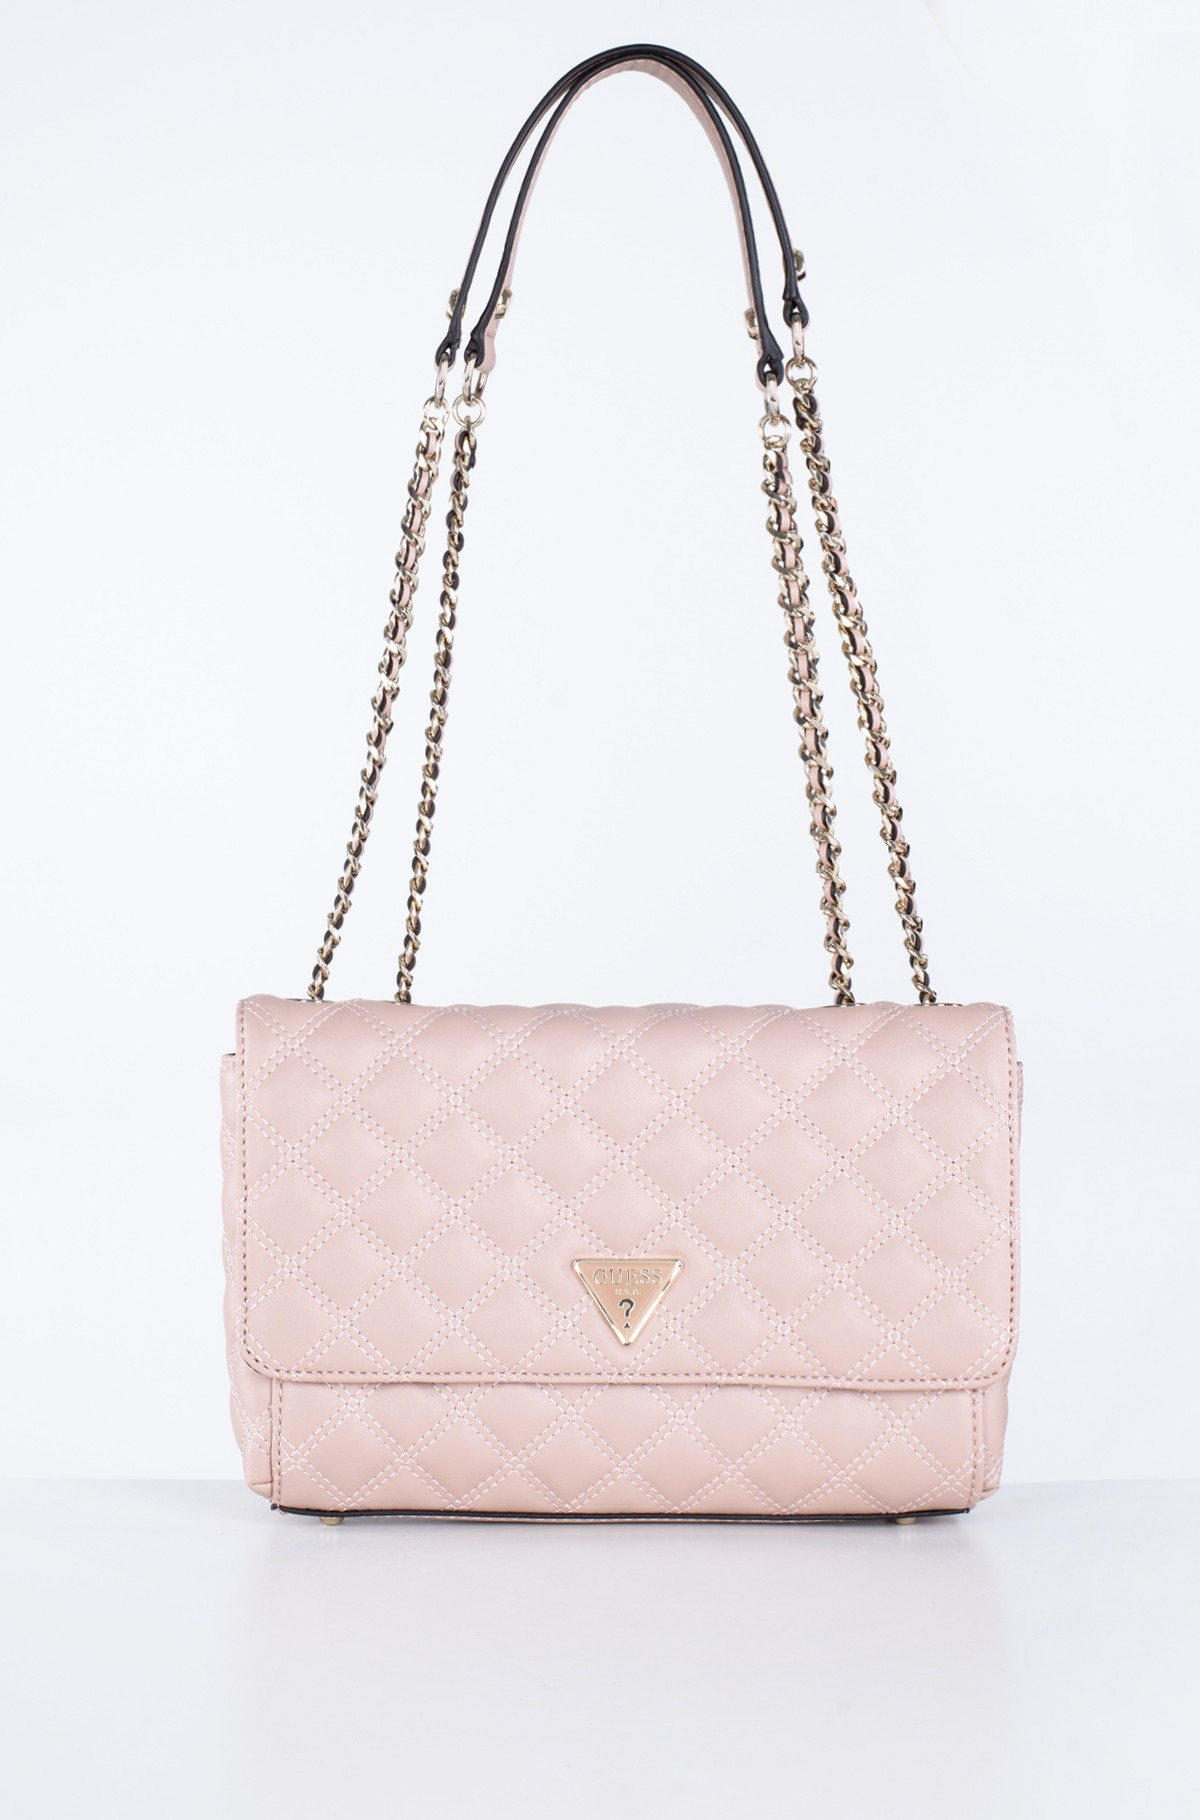 Shoulder bag HWEV76 79210-full-2